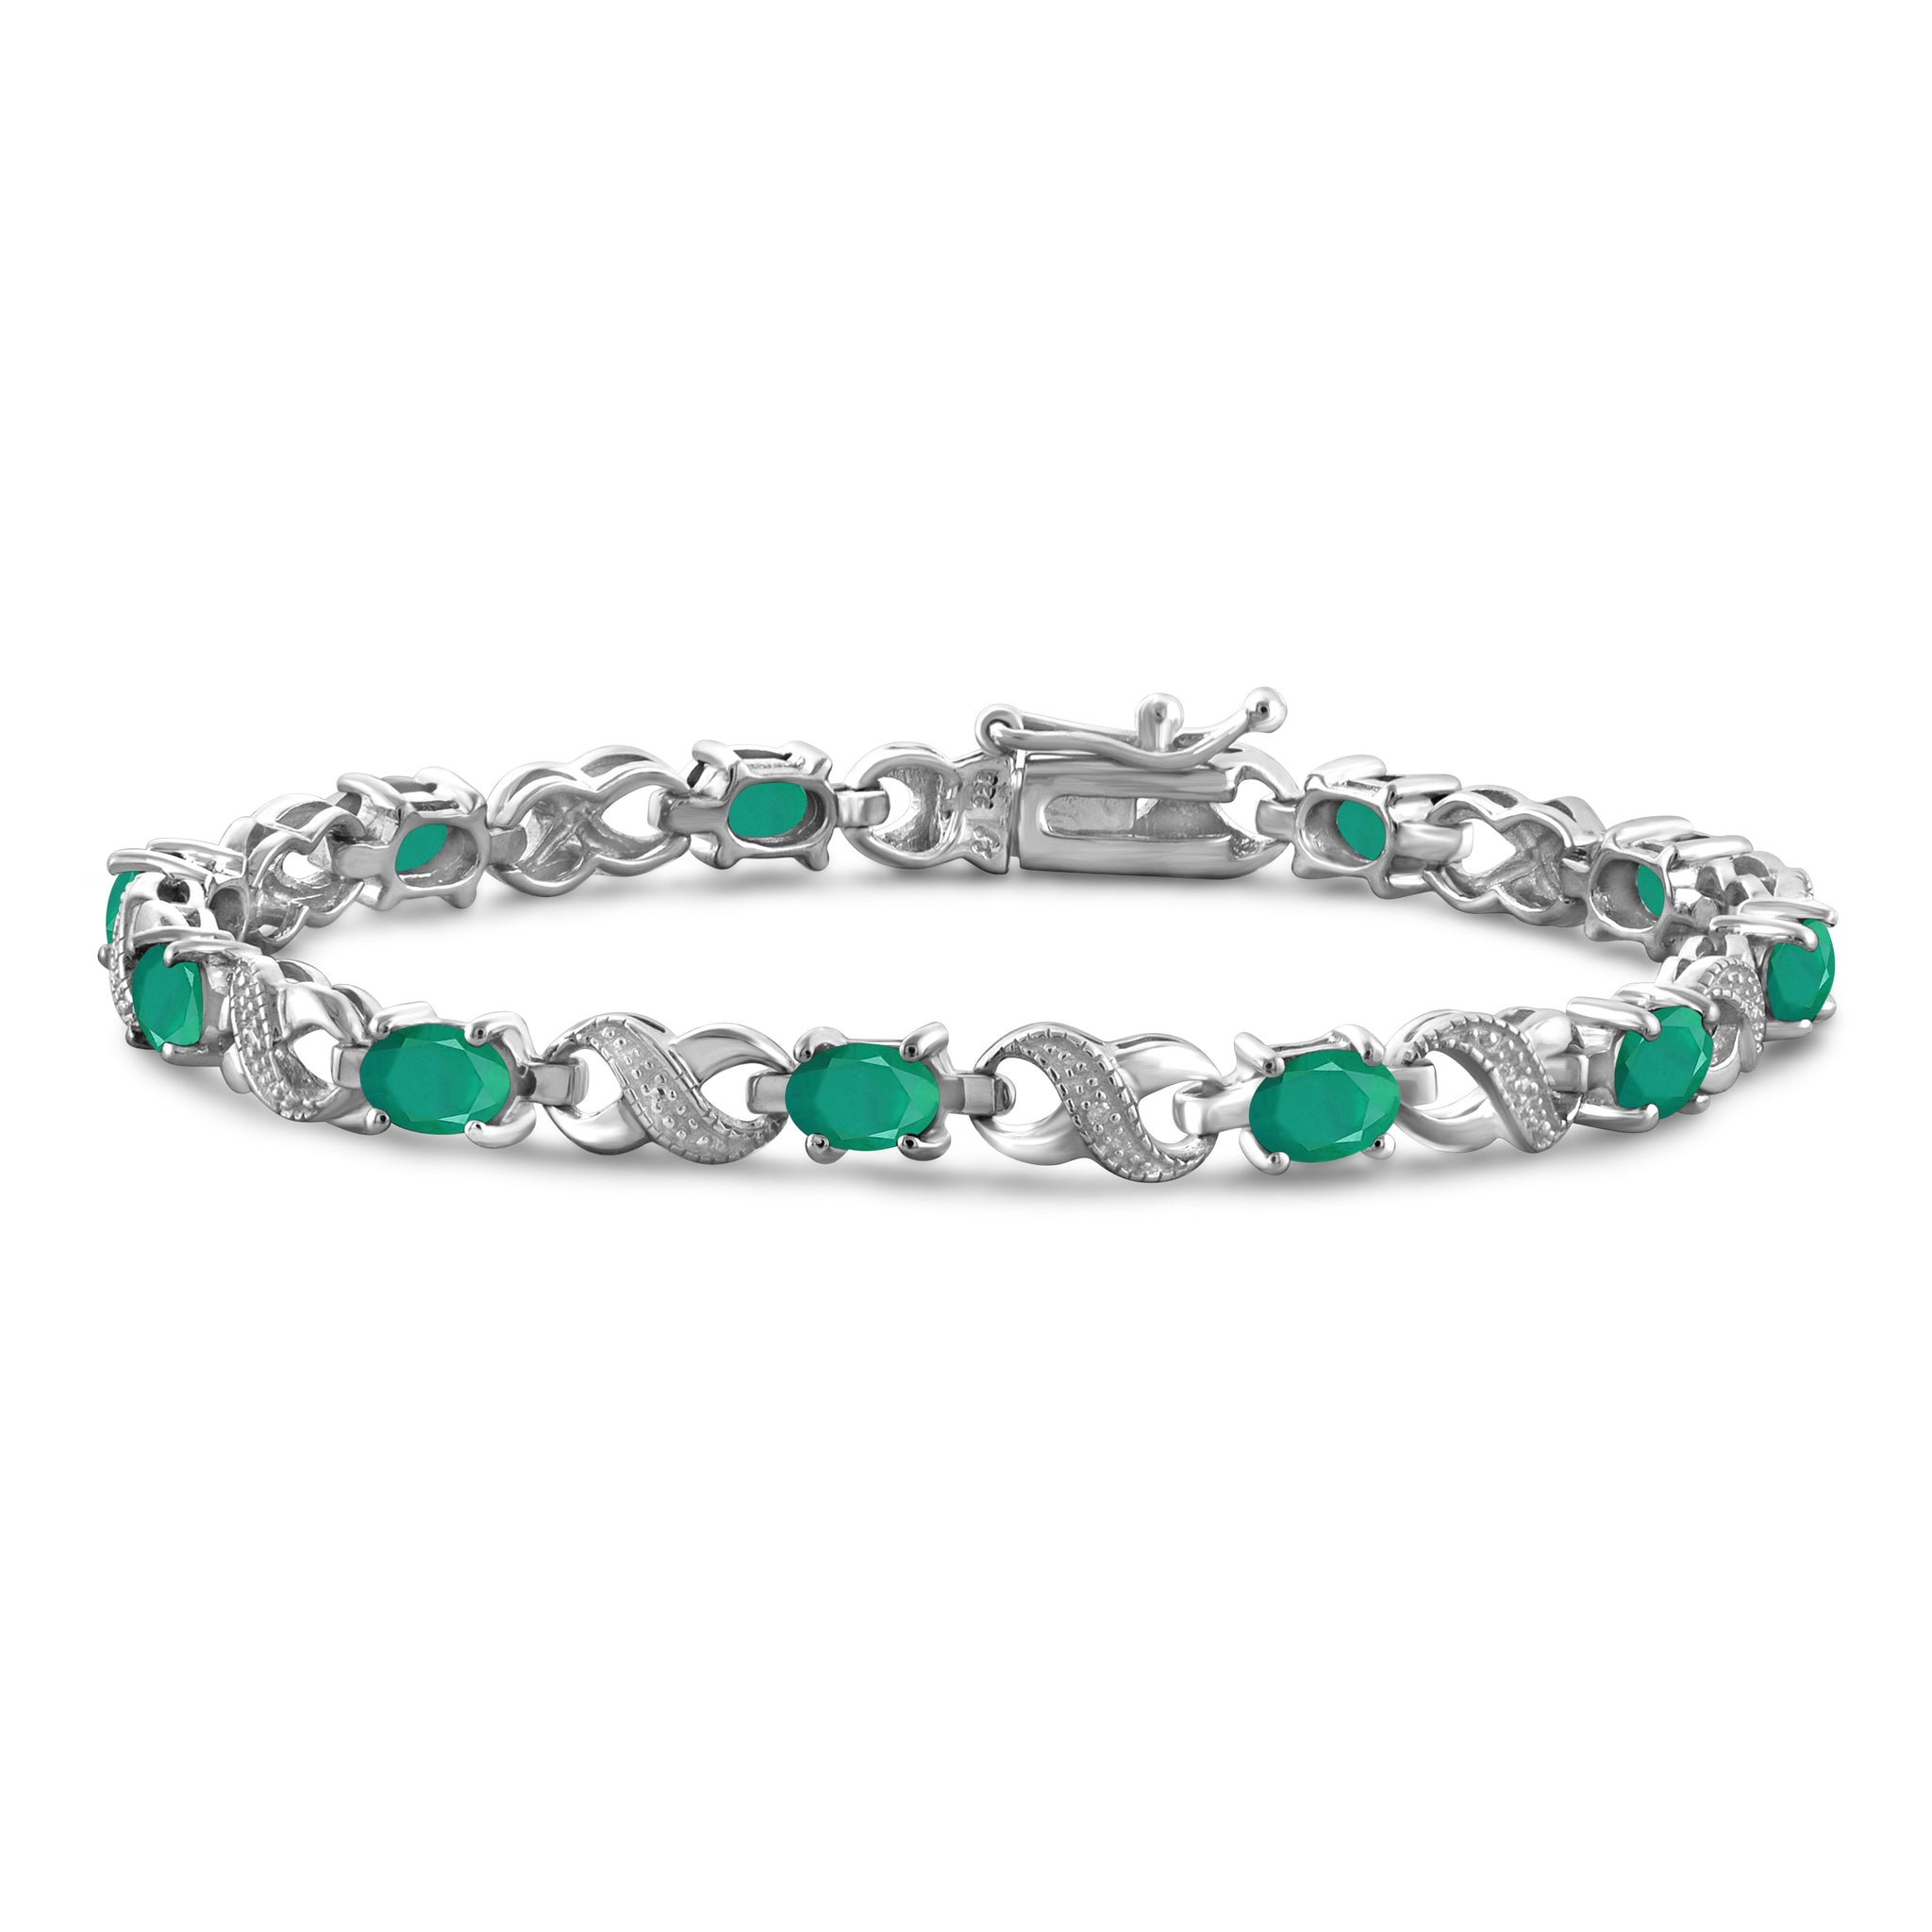 JewelonFire 4.15 Carat T.G.W. Genuine Emerald & White Diamond Accent Sterling Silver Bracelet - Assorted Colors